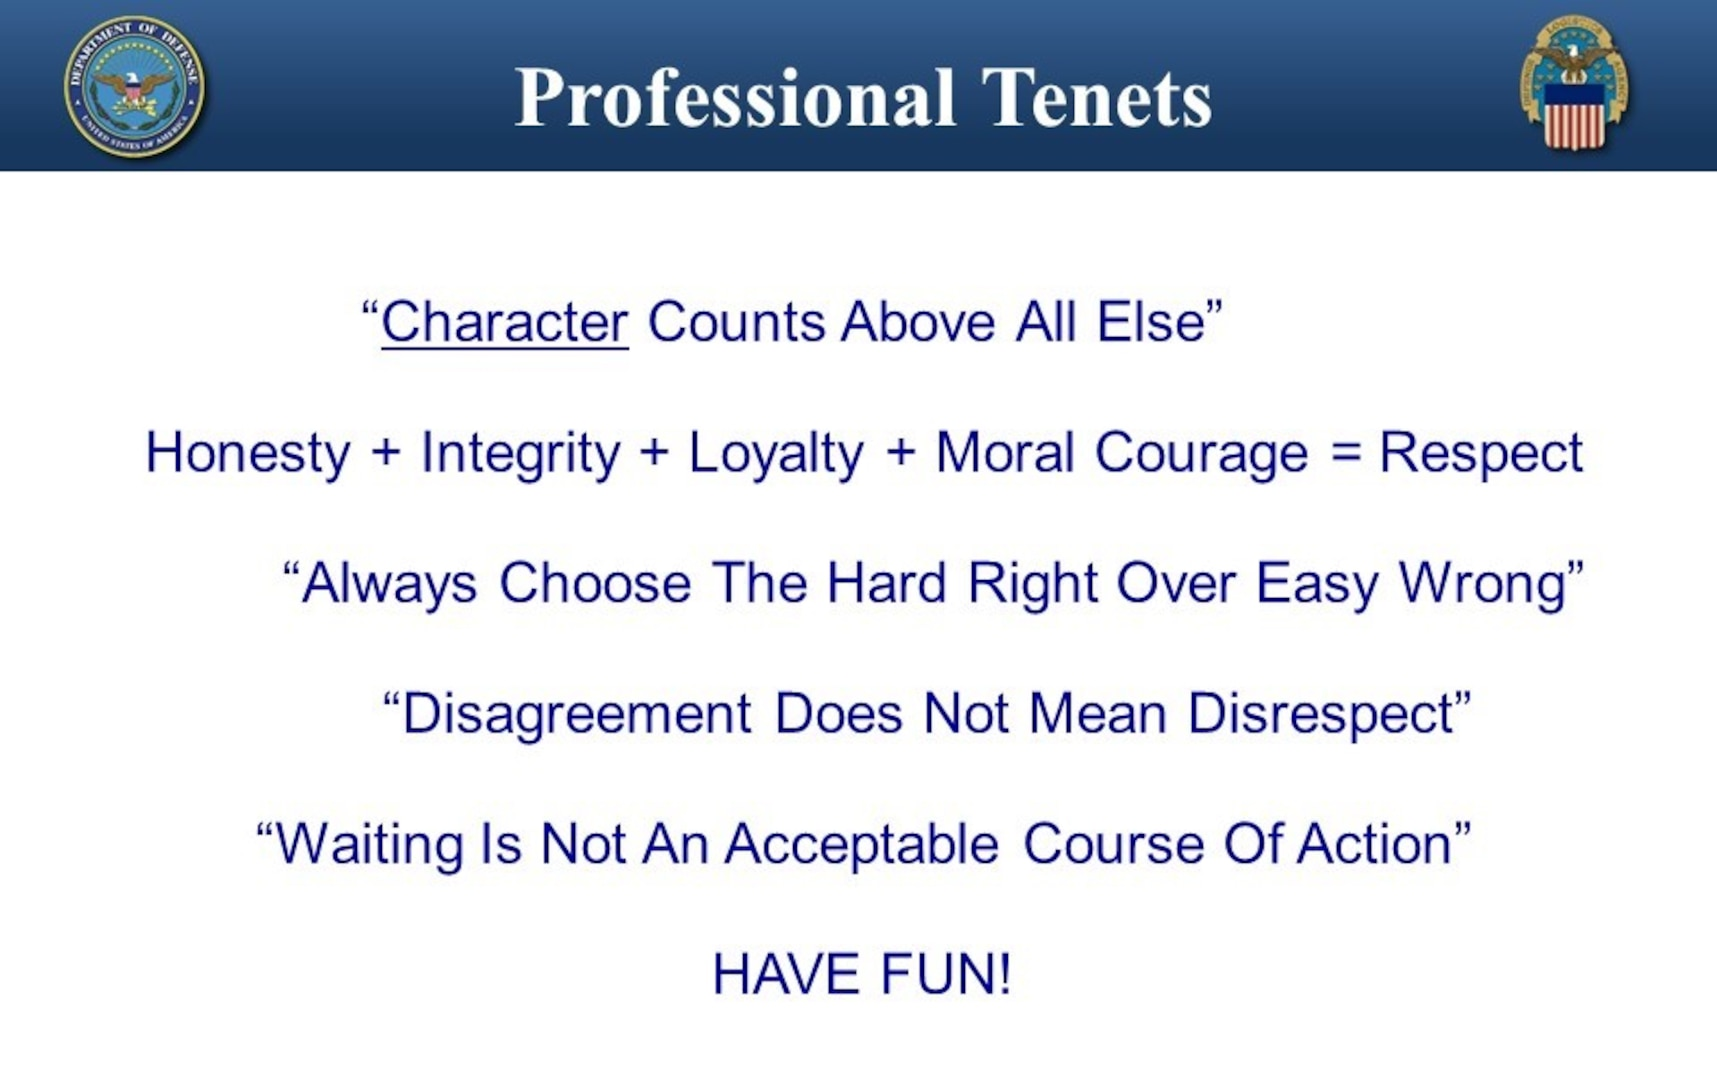 PowerPoint slide listing professional tenets including character; honesty, integrity, loyalty and moral courage; always doing the right thing; respect; and having fun.